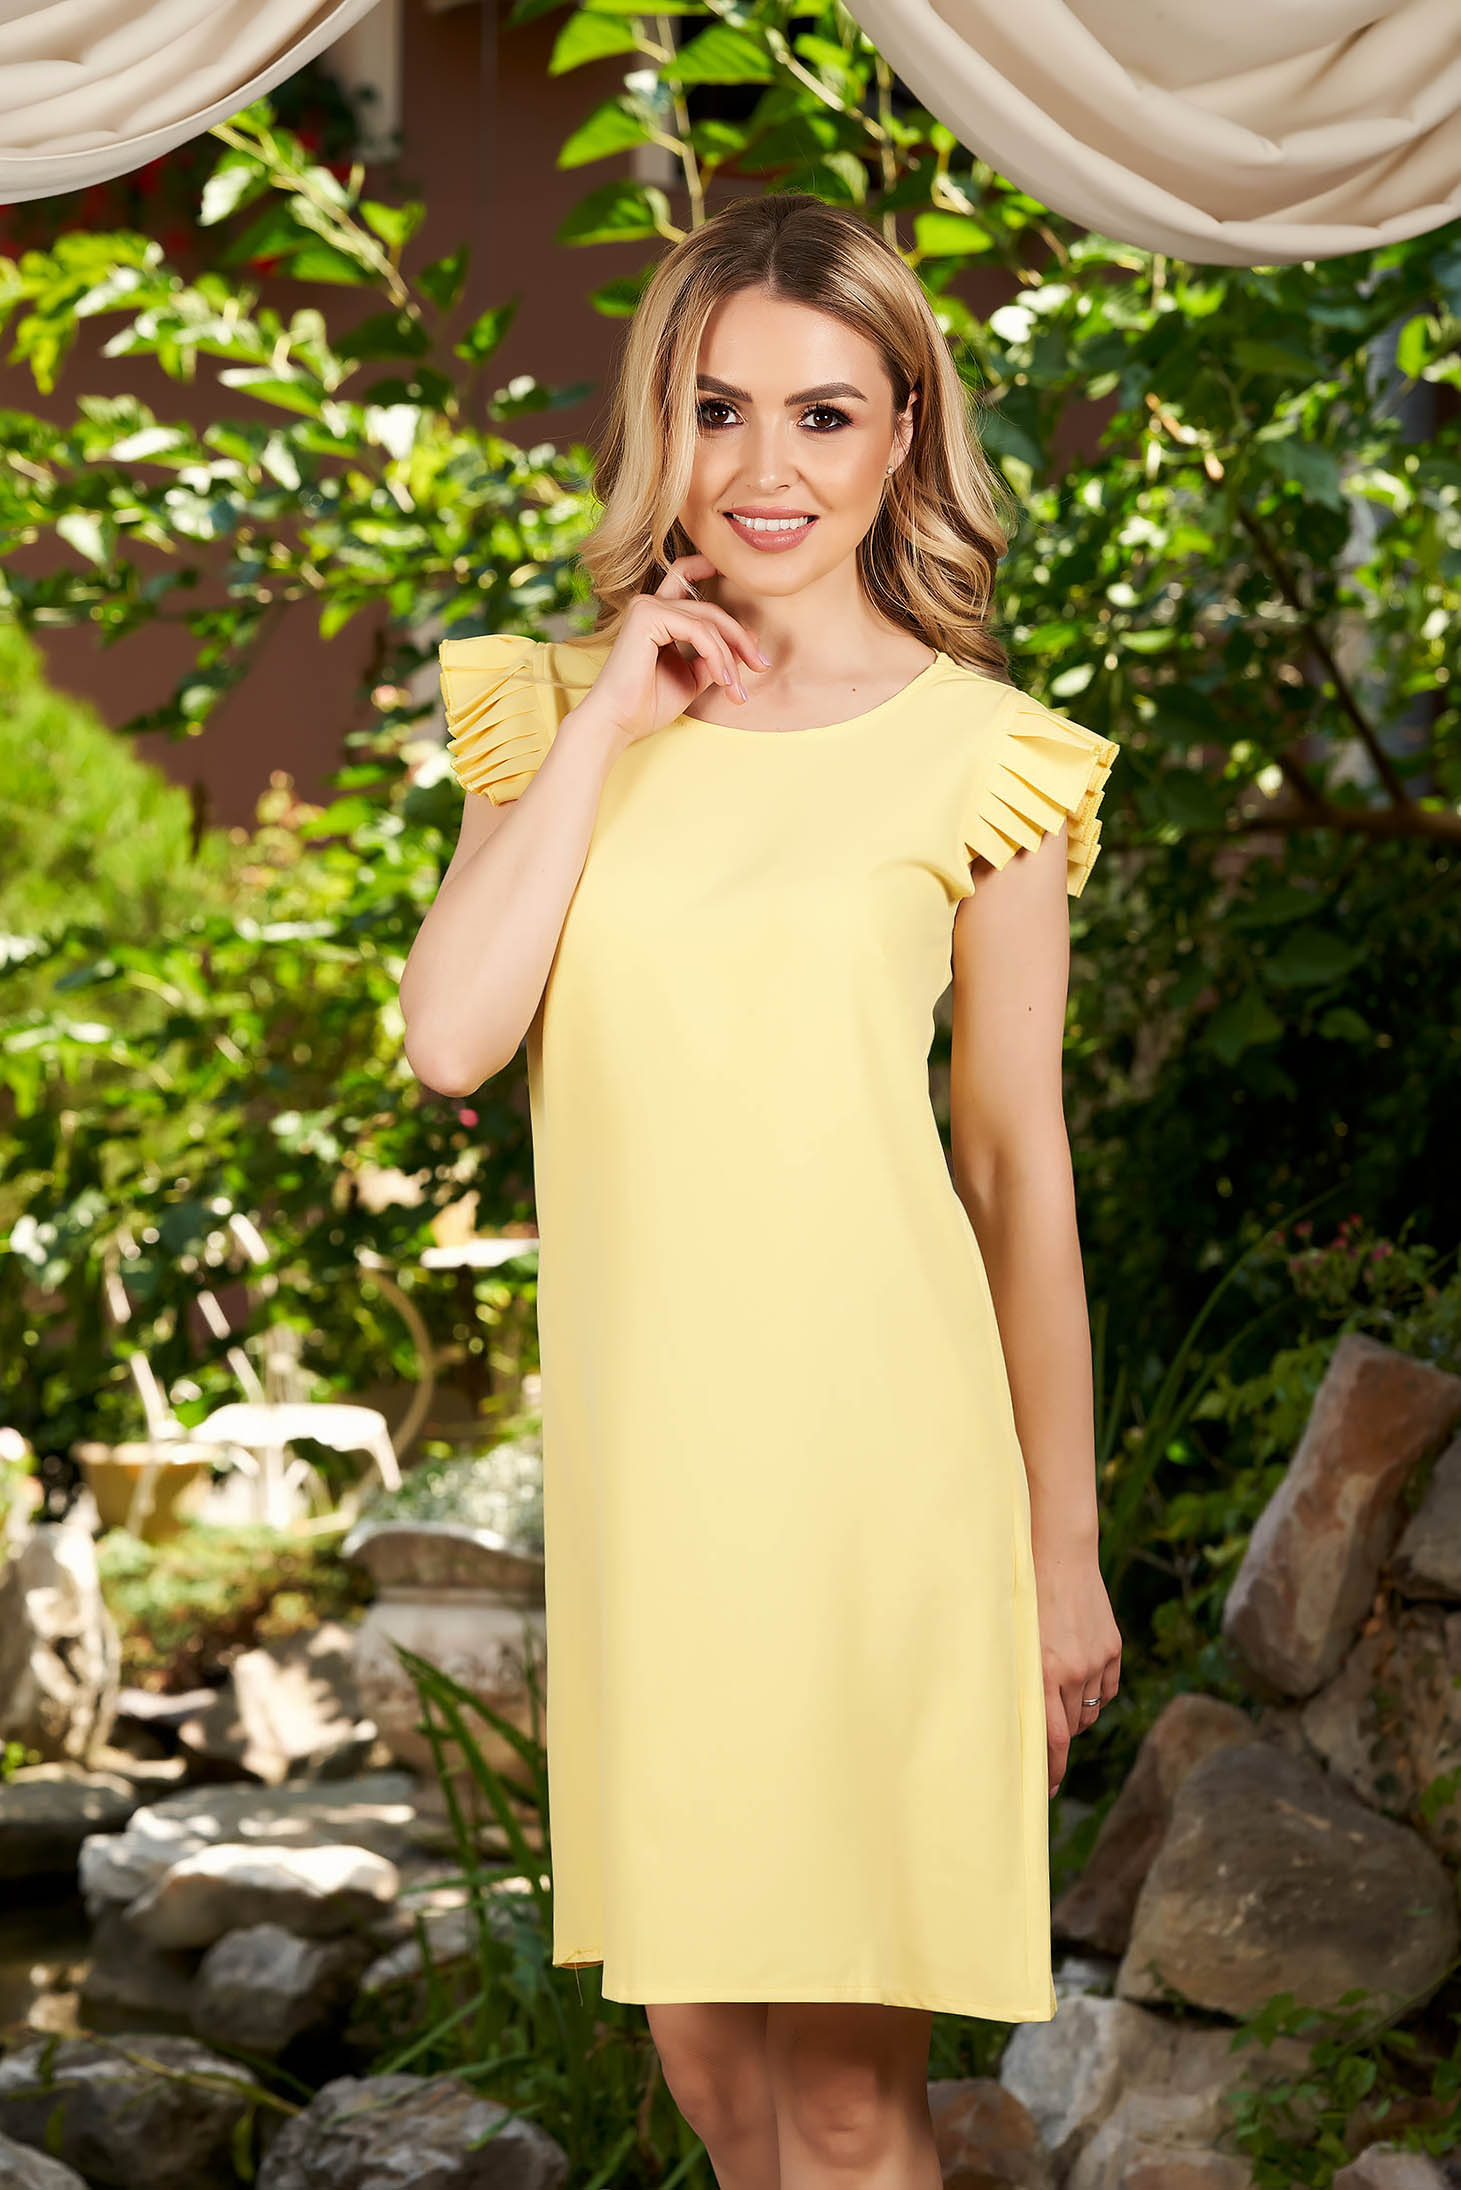 Yellow dress daily short cut flared short sleeves with rounded cleavage